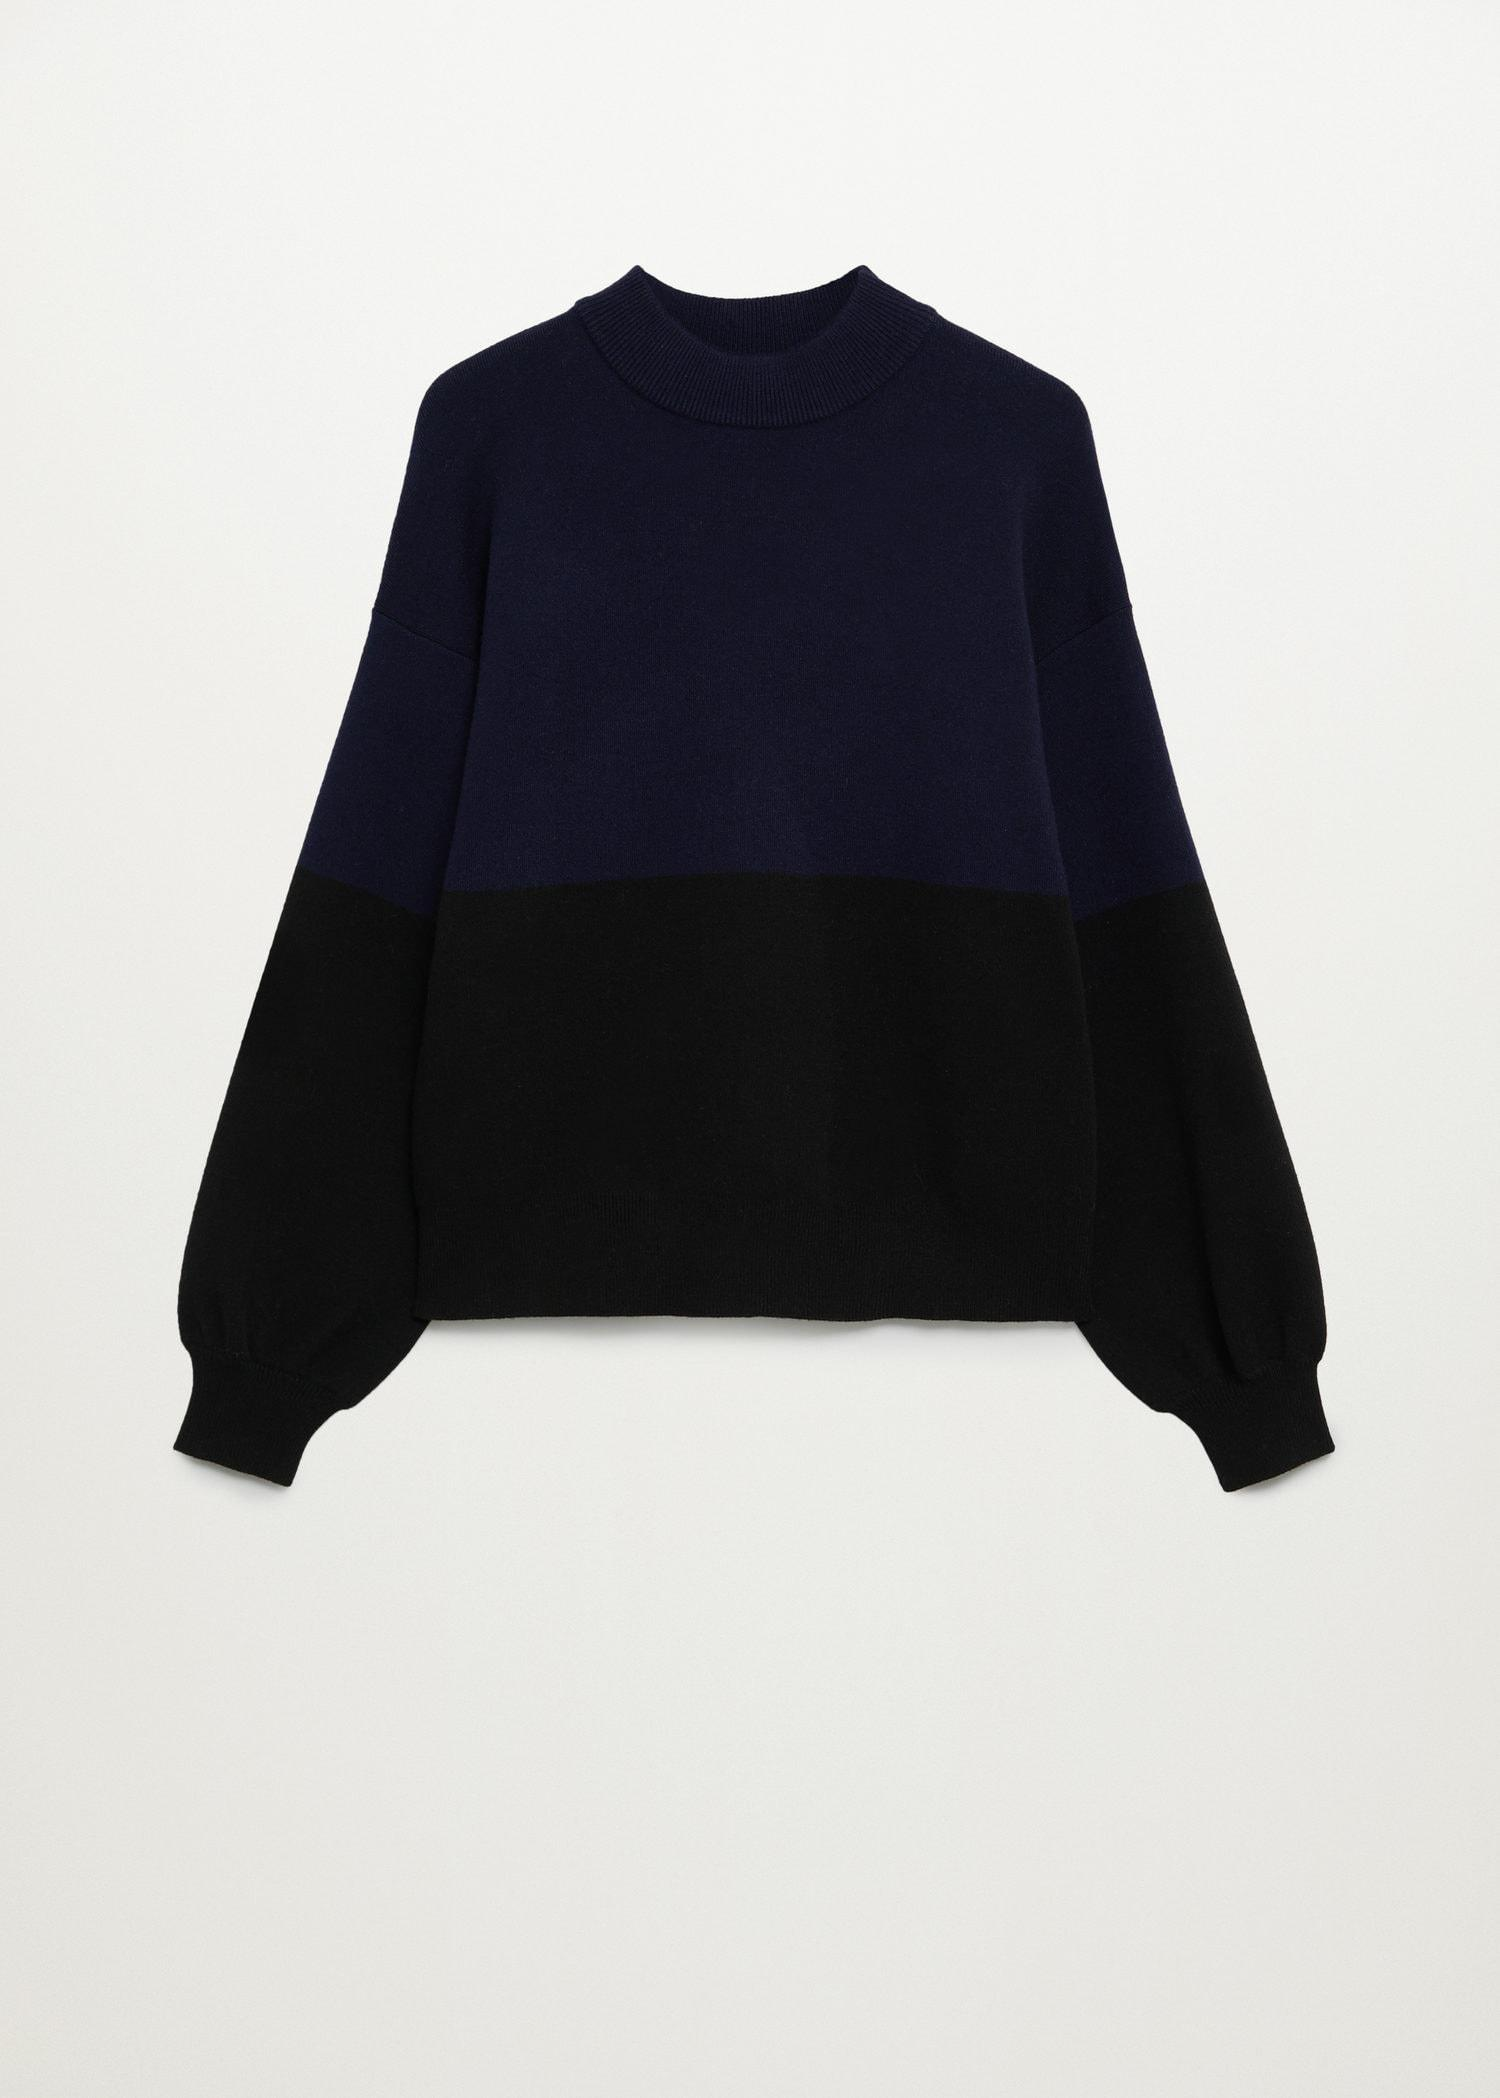 Sweater with puffed sleeves 7